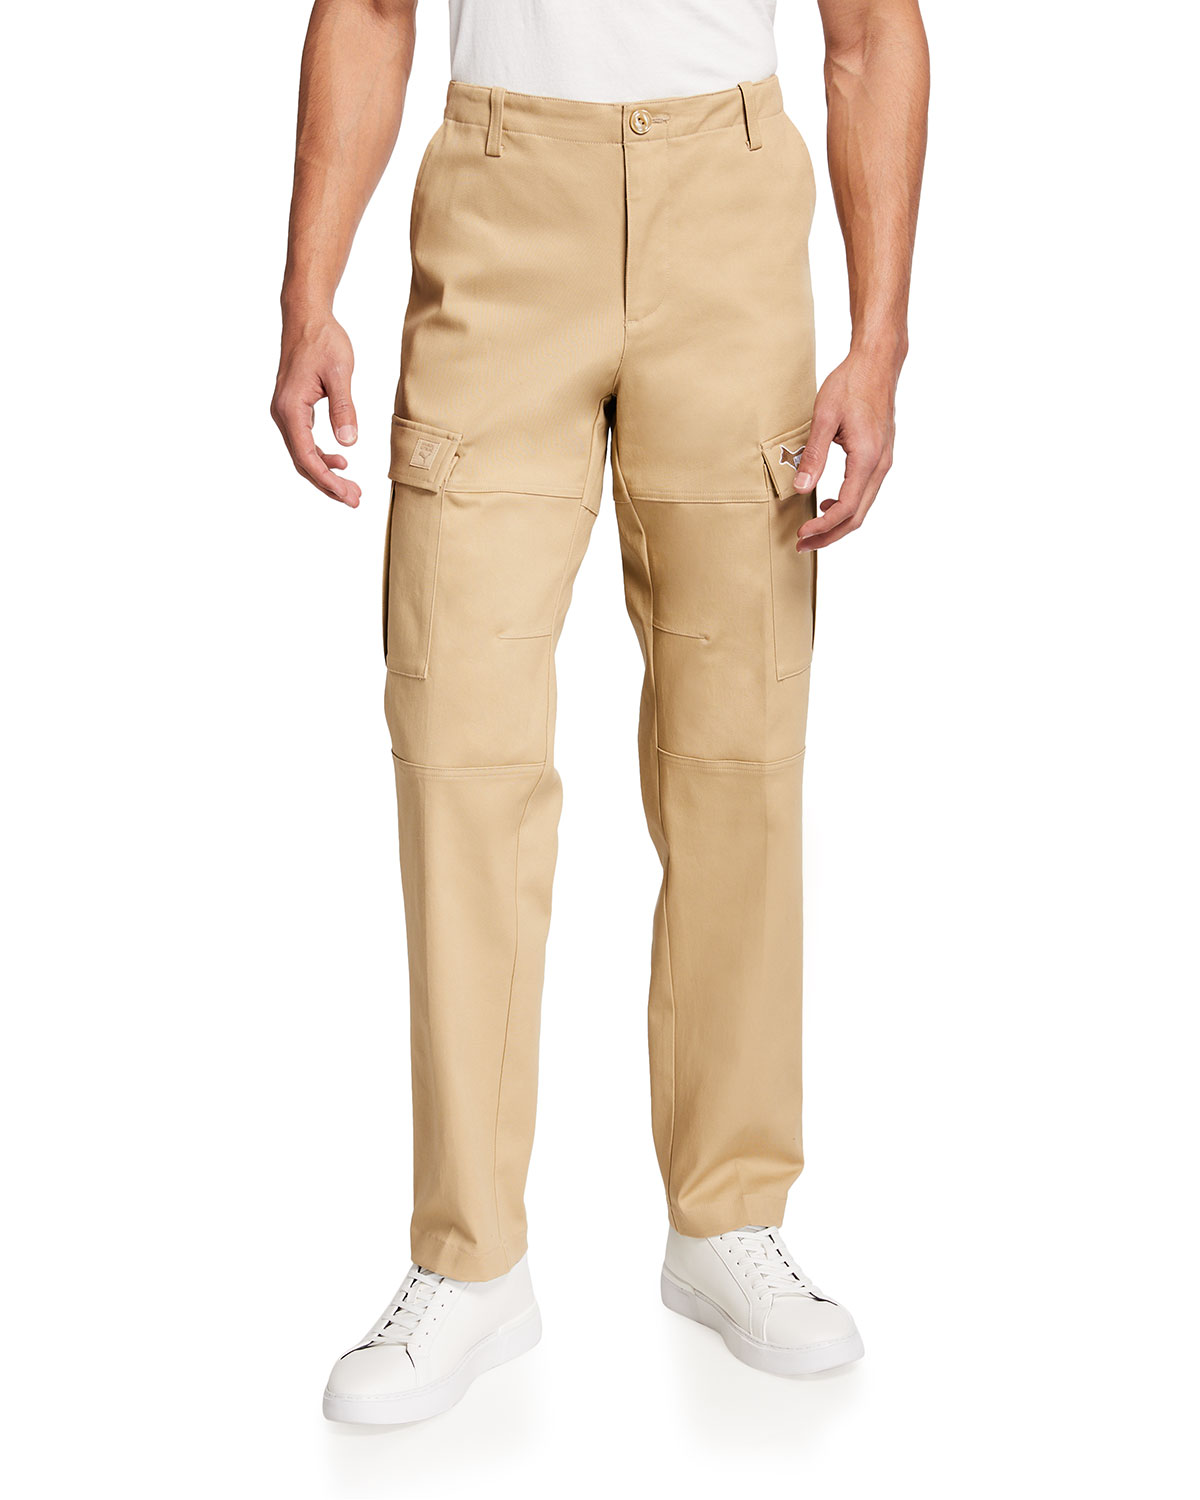 Puma MEN'S X MAISON KITSUNE FOX CARGO PANTS